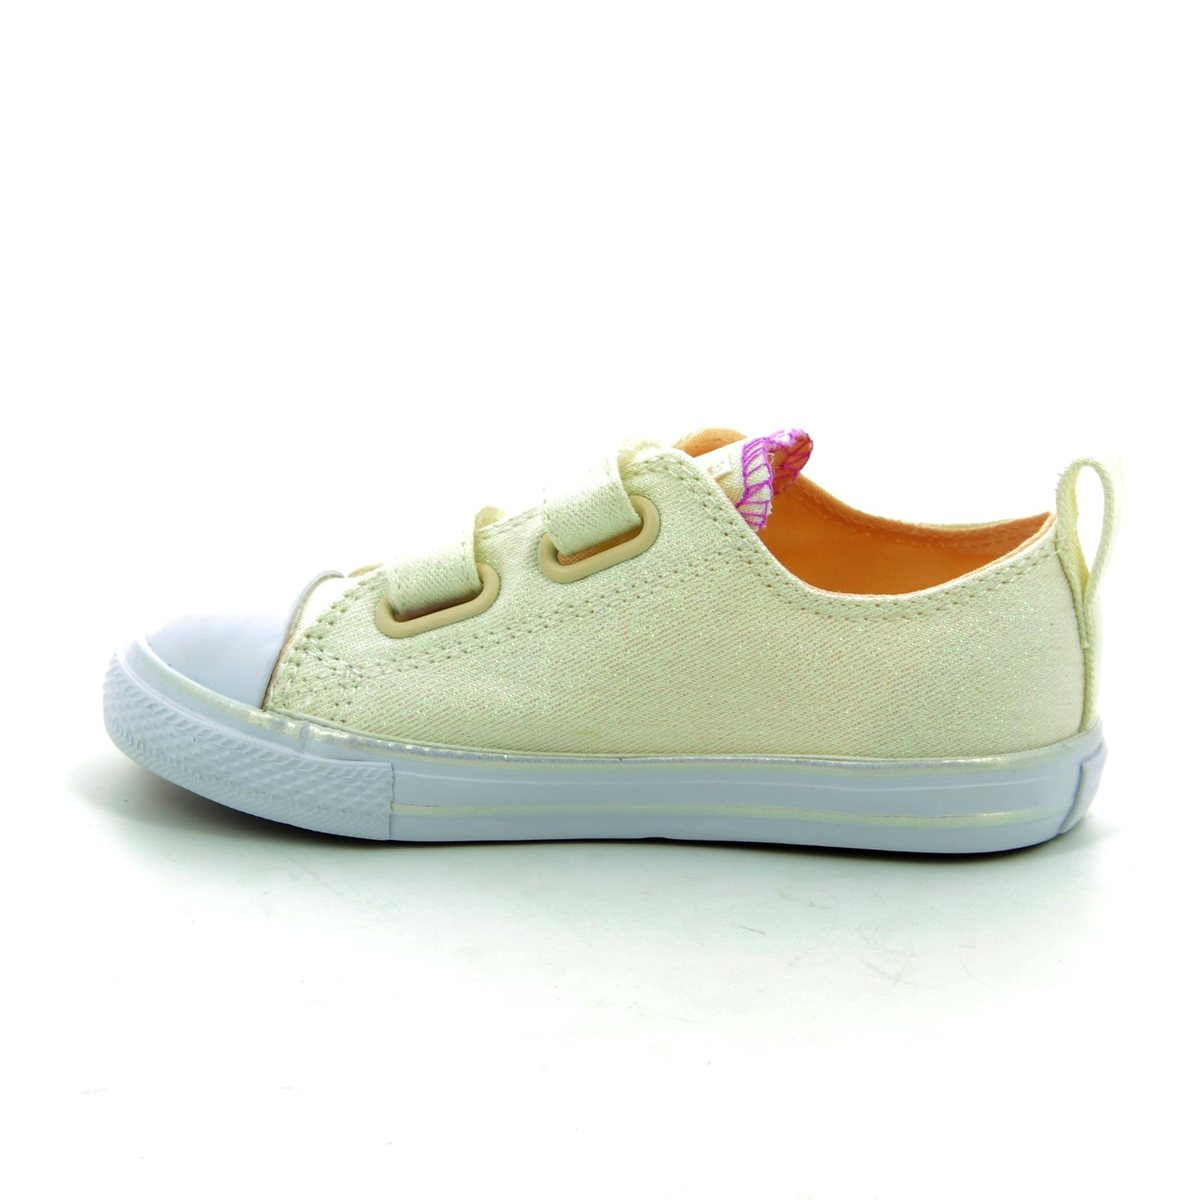 f63c4a3d8a6d Converse Trainers - White multi - 756041C 102 Chuck Taylor All Star 2V OX  Velcro